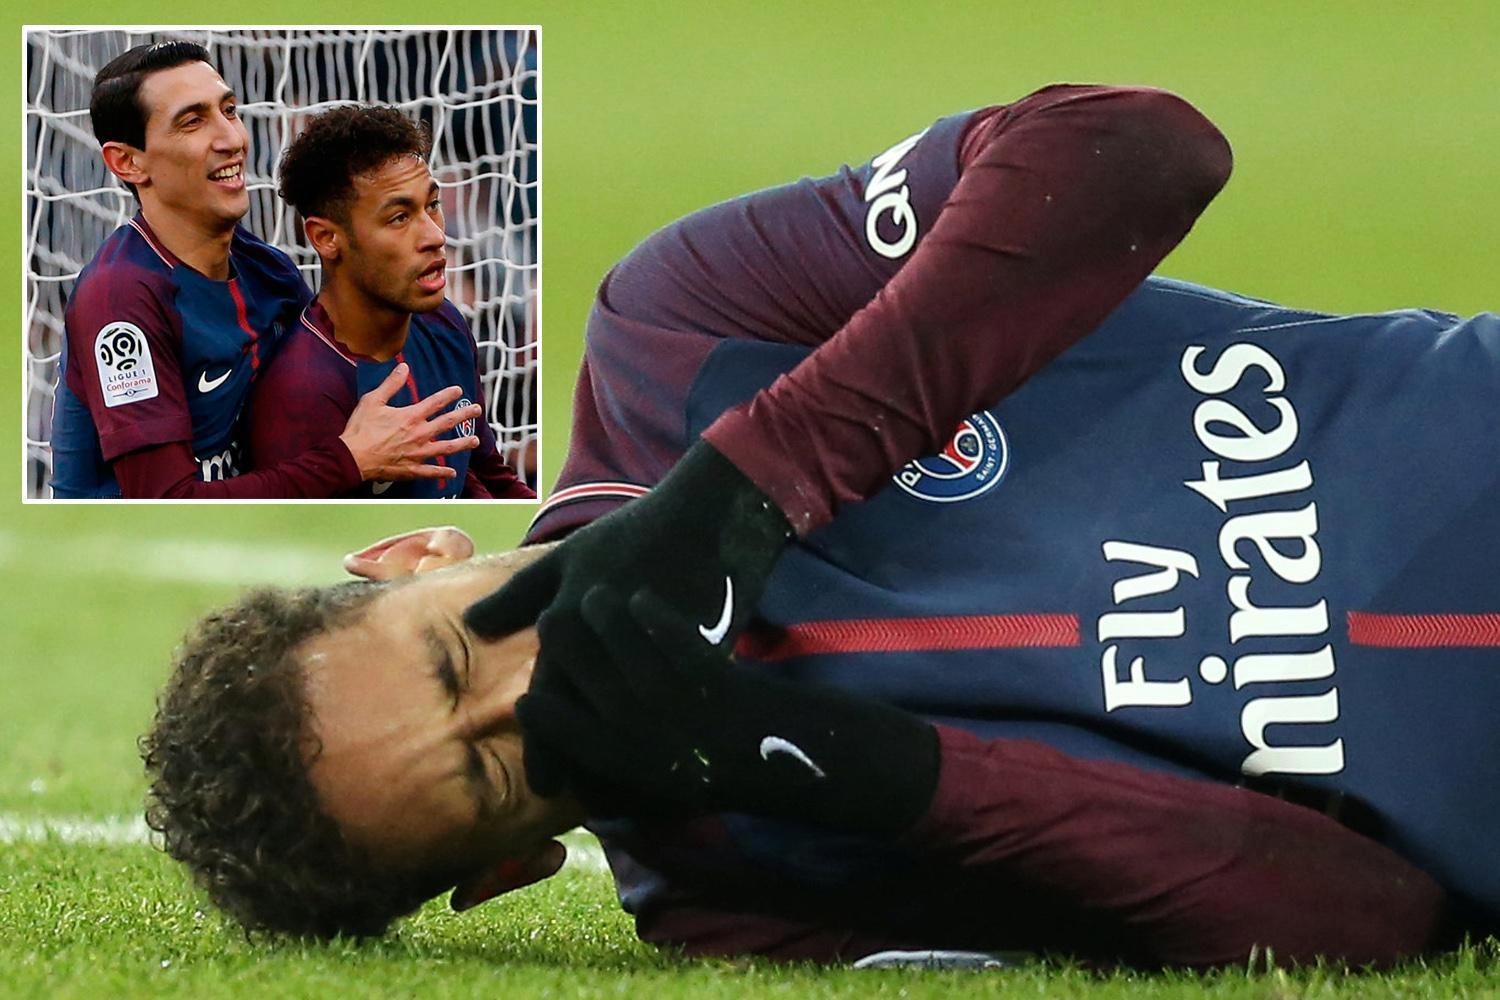 Neymar set to be replaced by Angel Di Maria for PSG's Champions League return clash against Real Madrid after metatarsal fracture